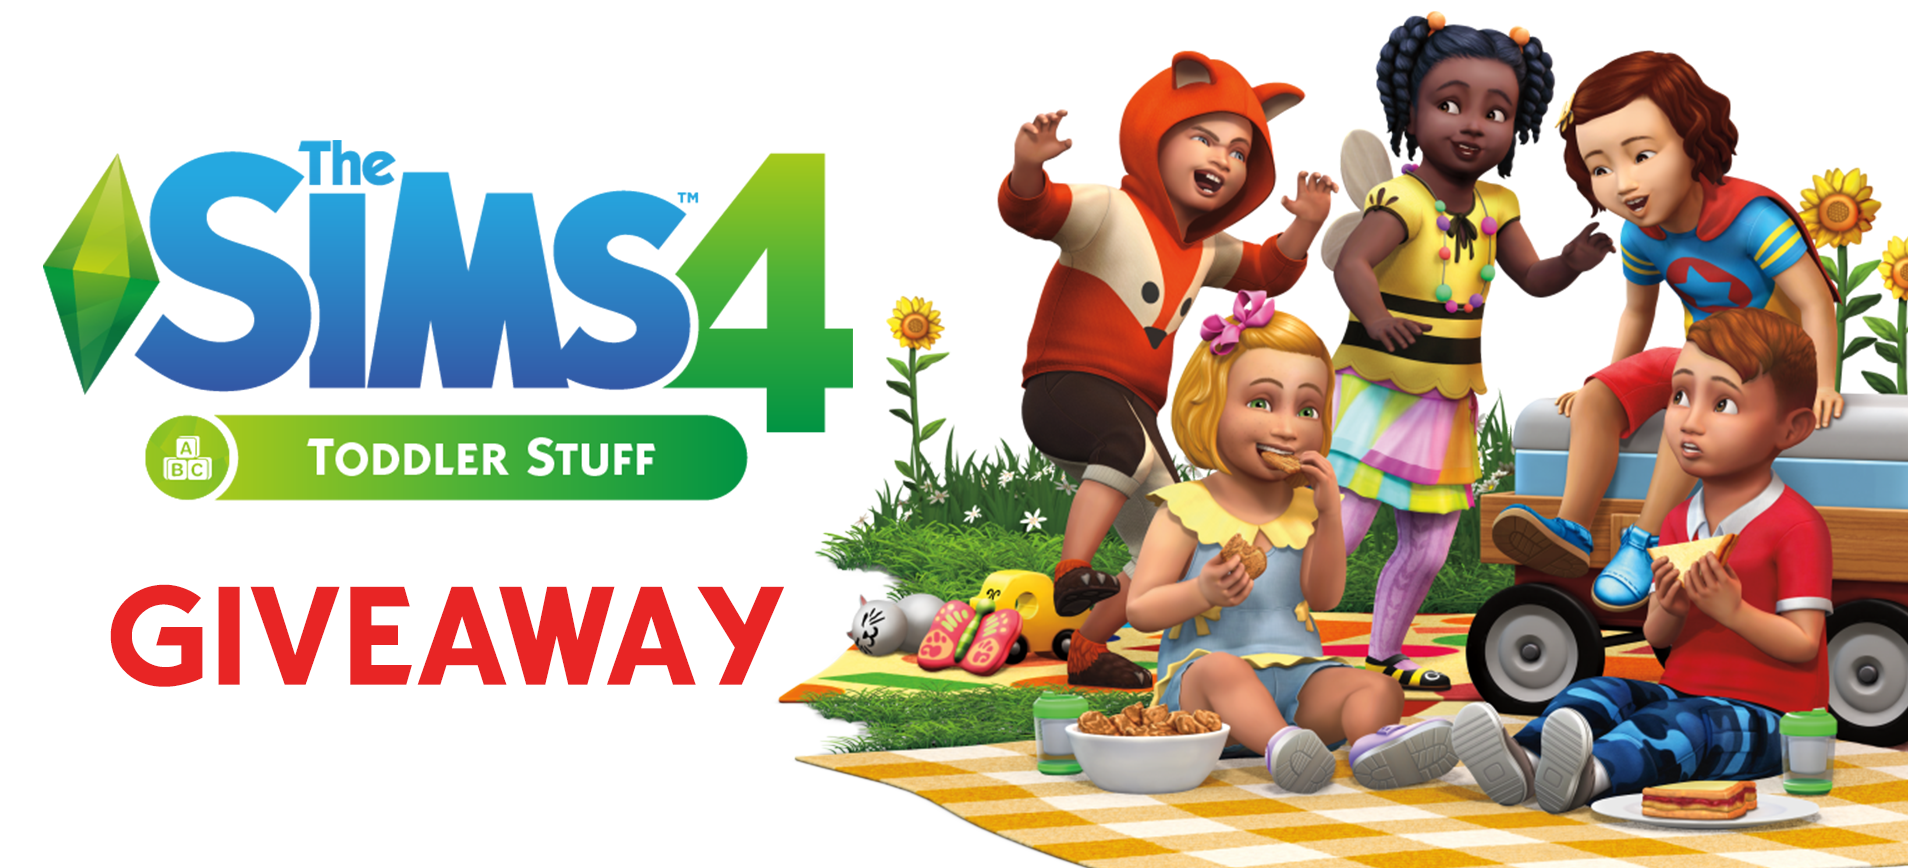 sims 4 giveaway simsvip giveaway win the sims 4 toddler stuff ended 7858